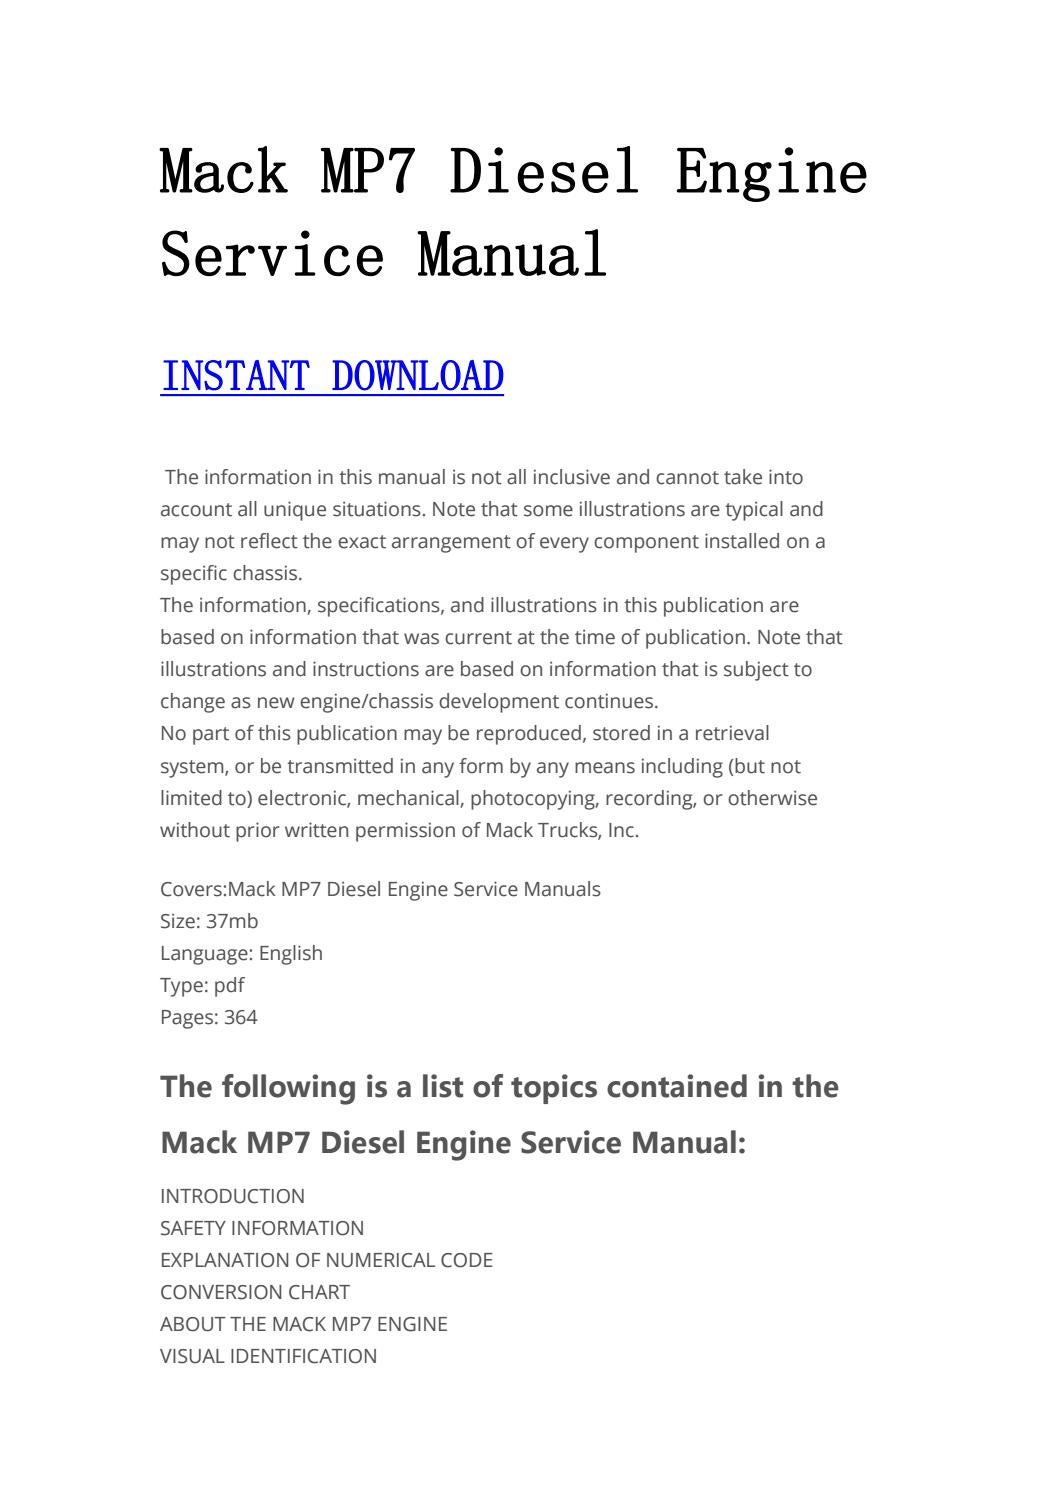 hight resolution of mack diesel engine service manual manualtrucks issuu jpg 1059x1497 mp7 mack truck engines diagram